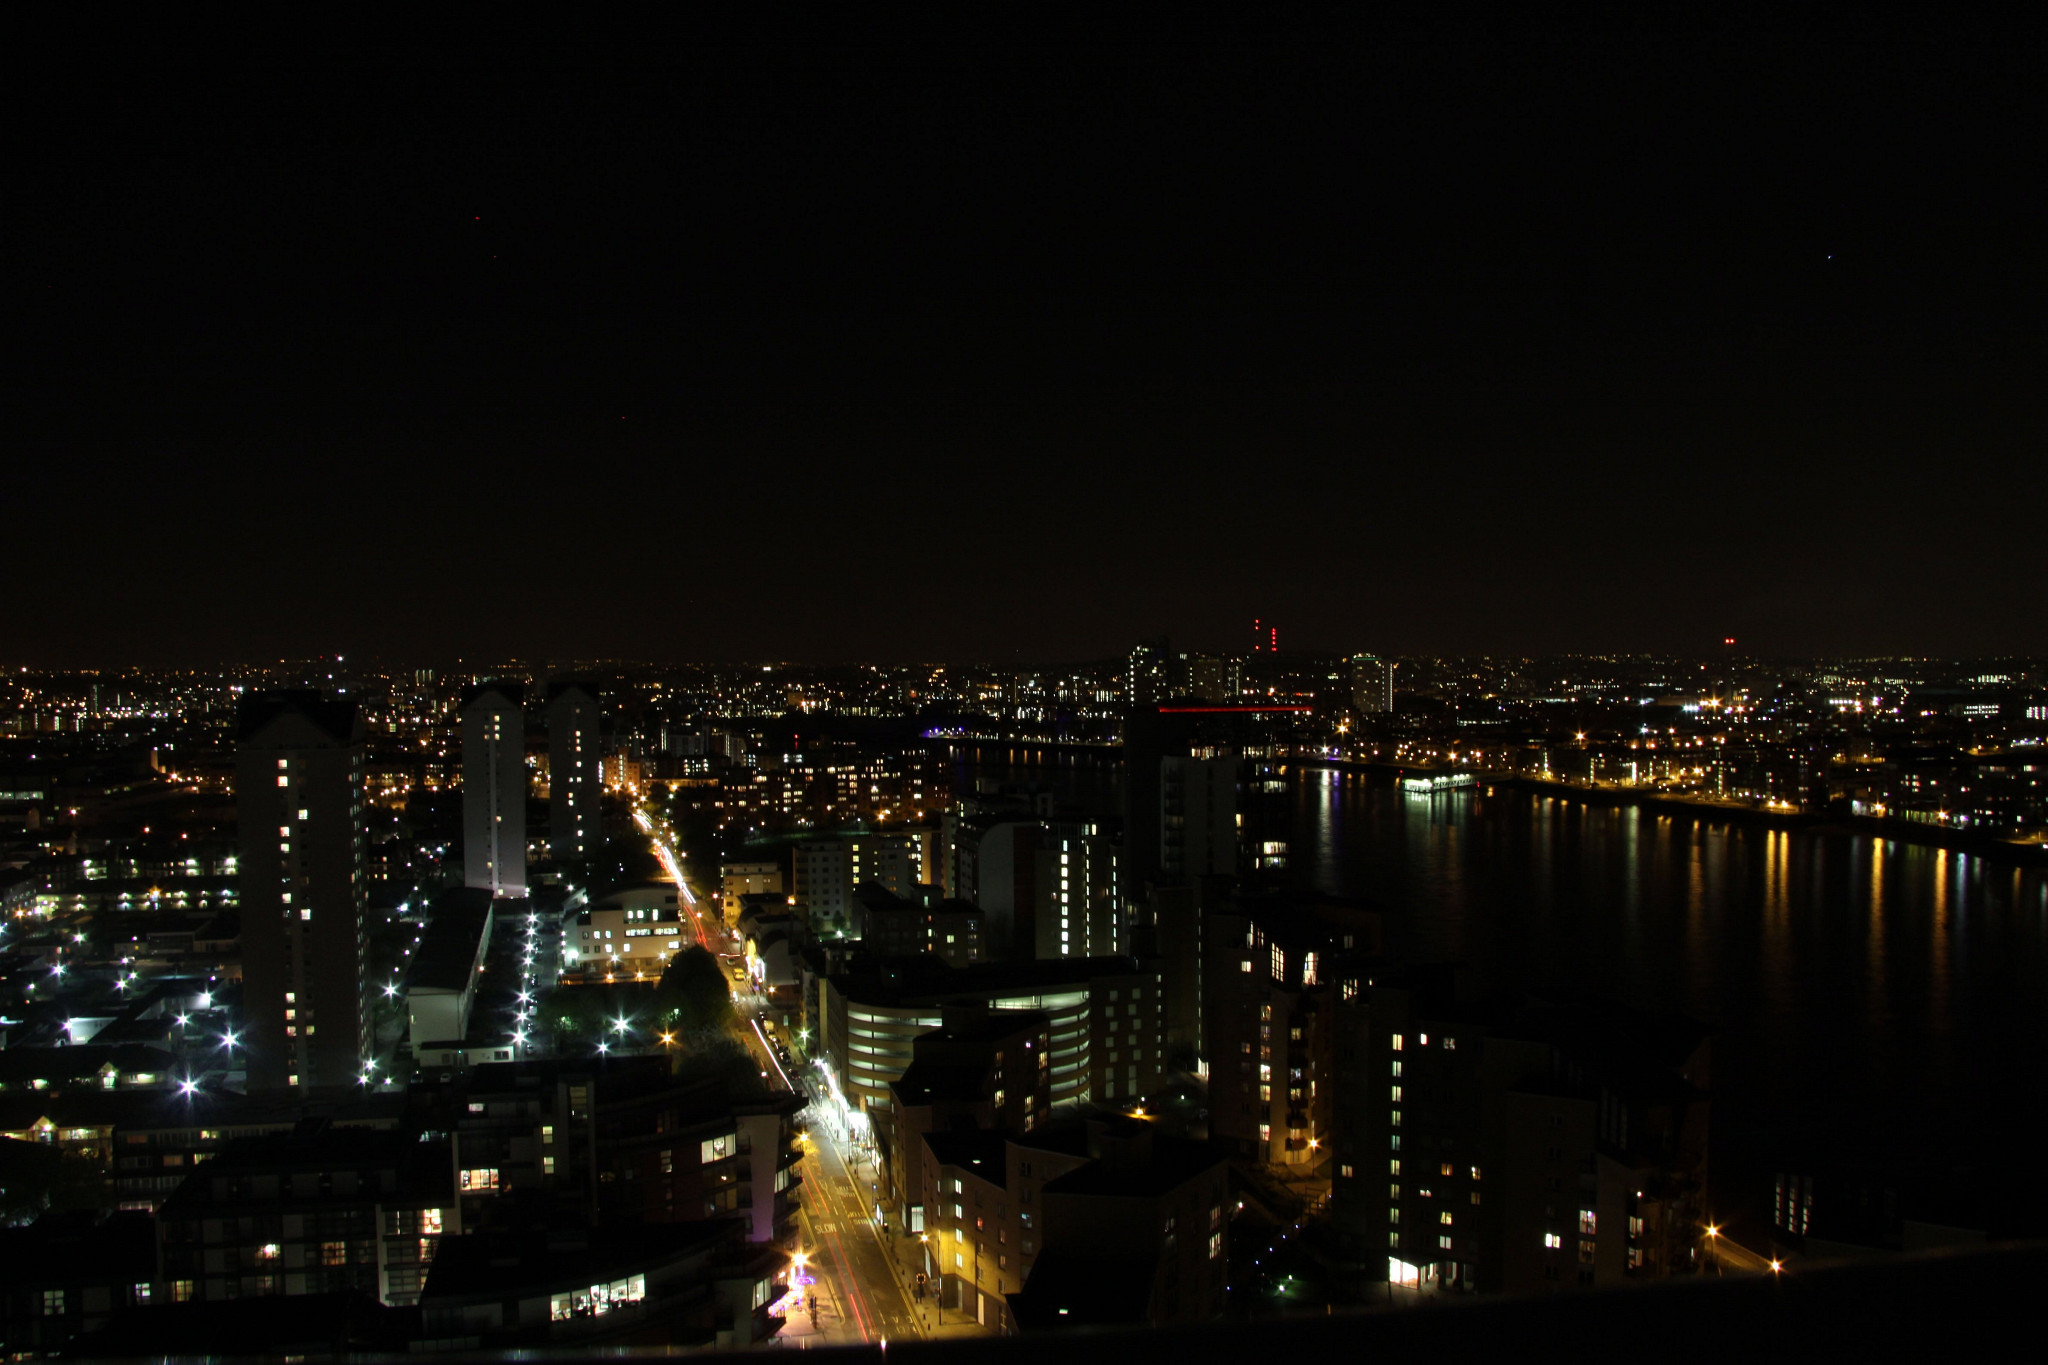 Night over the Thames